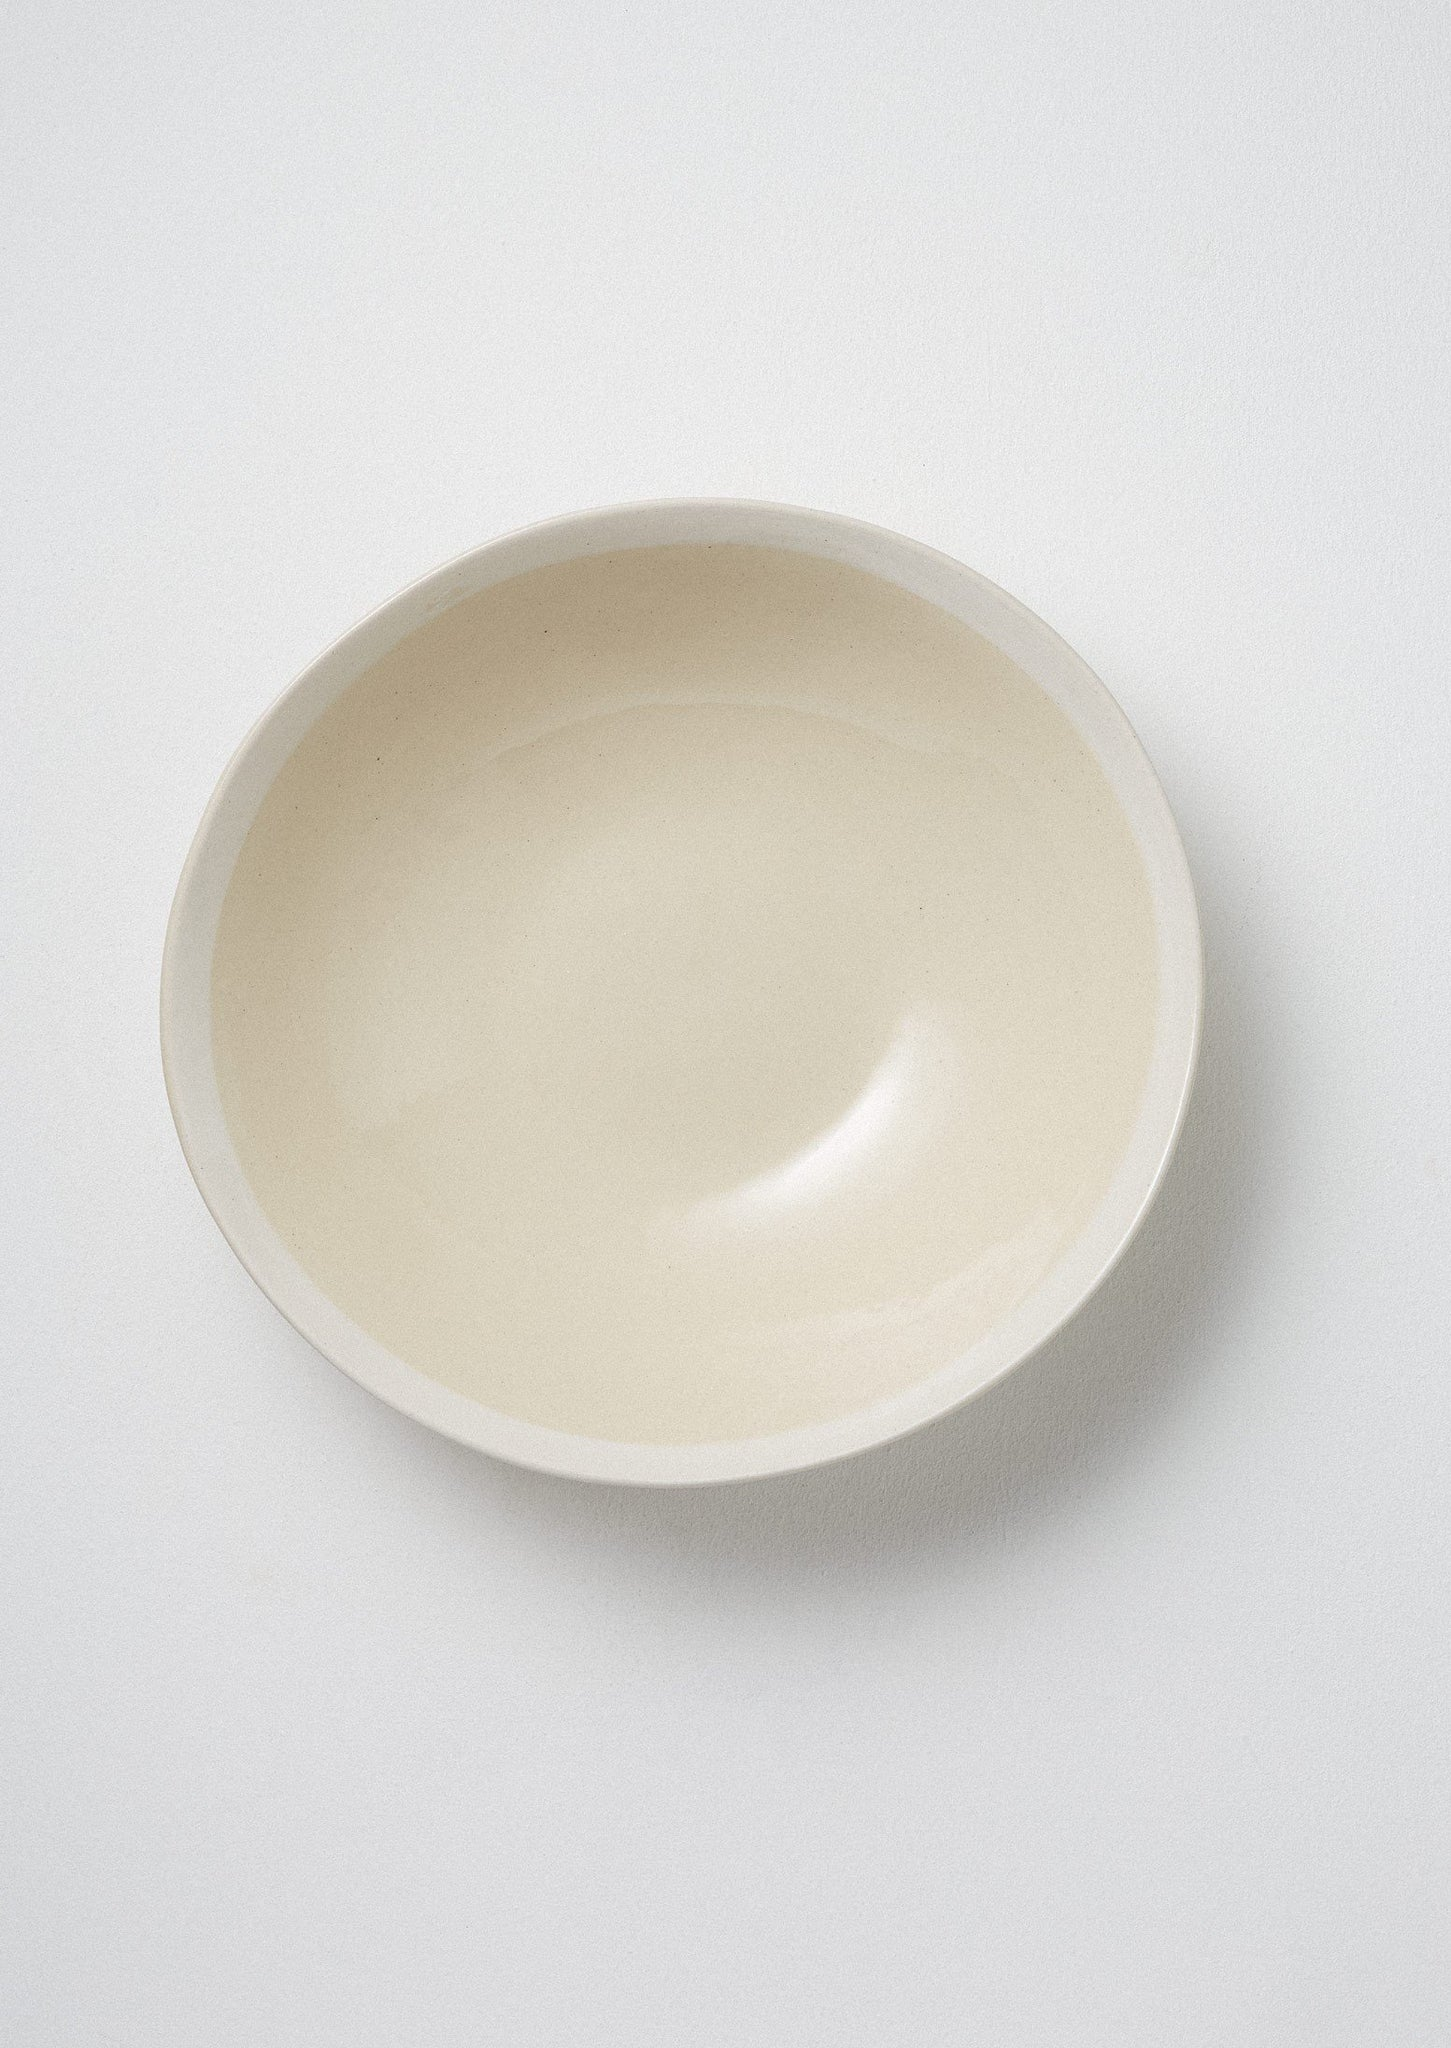 Wonki Ware White Wash Salad Bowl | Natural/White